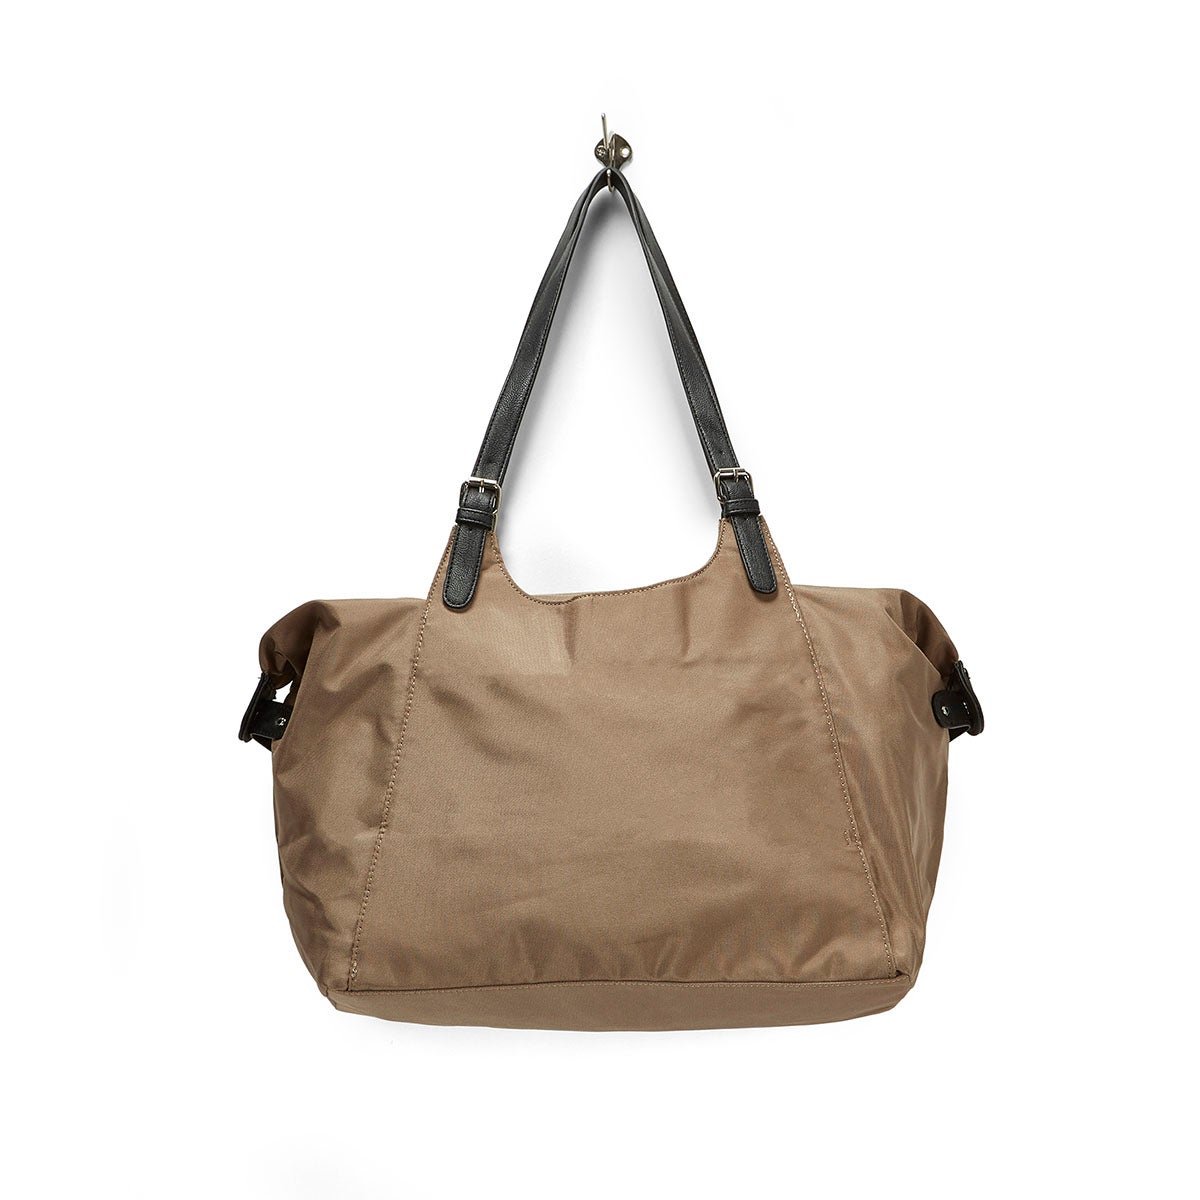 Lds Roots73 taupe nylon large tote bag